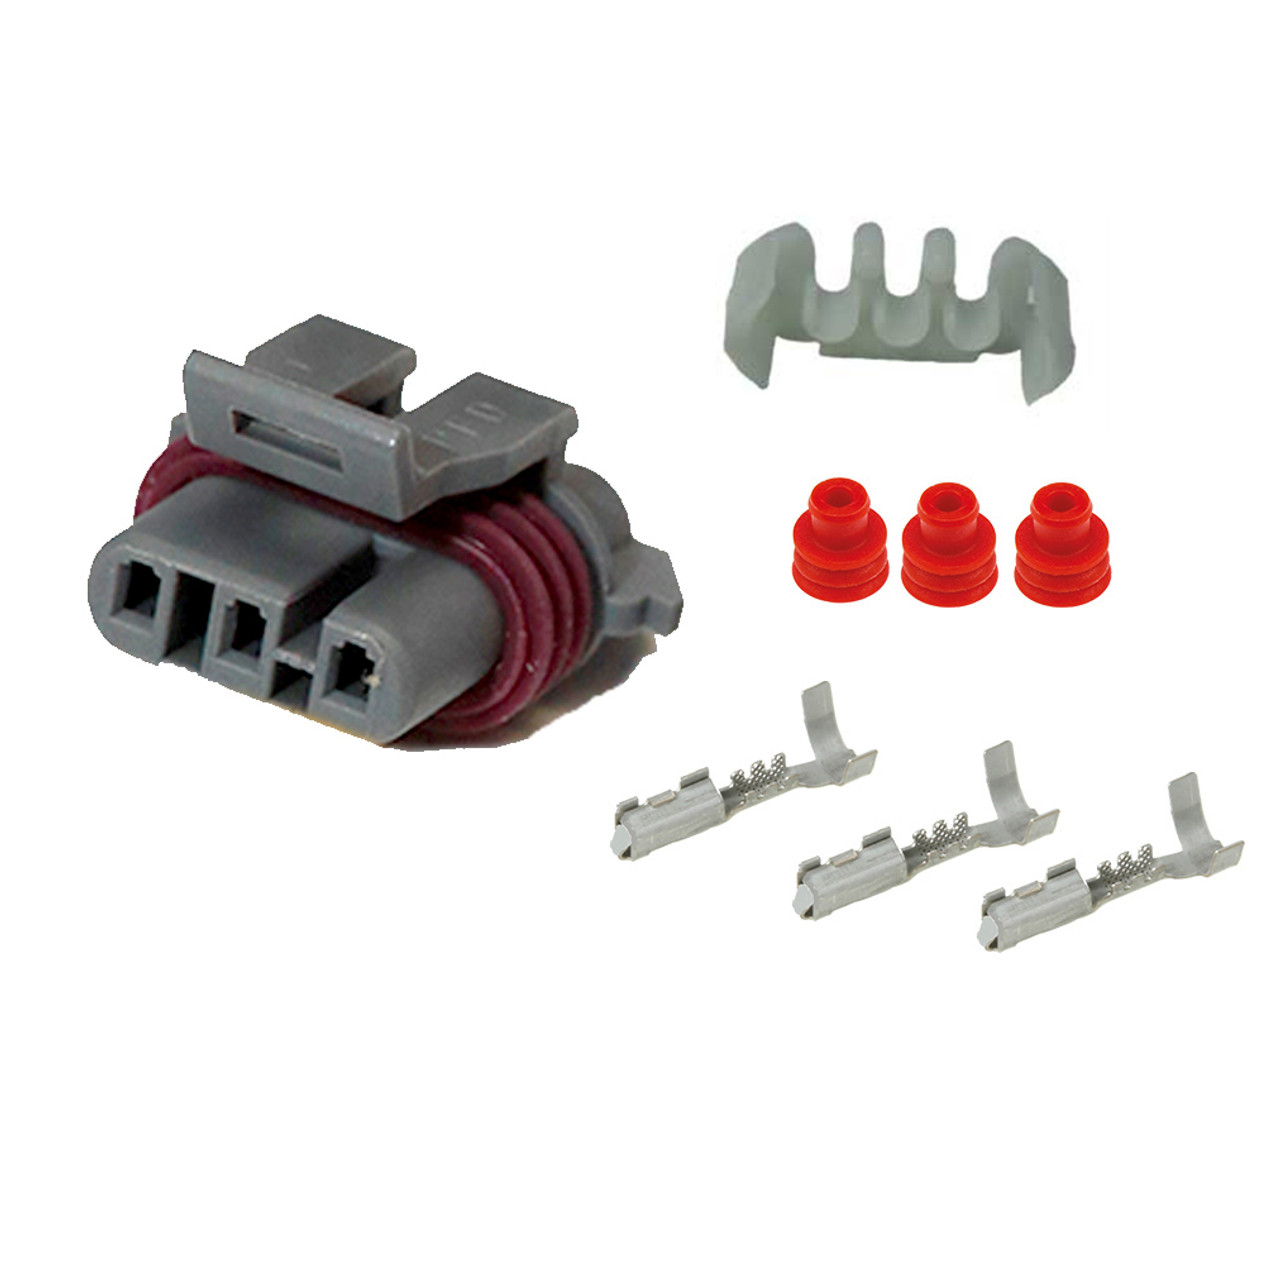 hight resolution of map sensor wiring harness female connector kit for gm ls1 ls2 ls6 4253456543 85560 1544226081 jpg